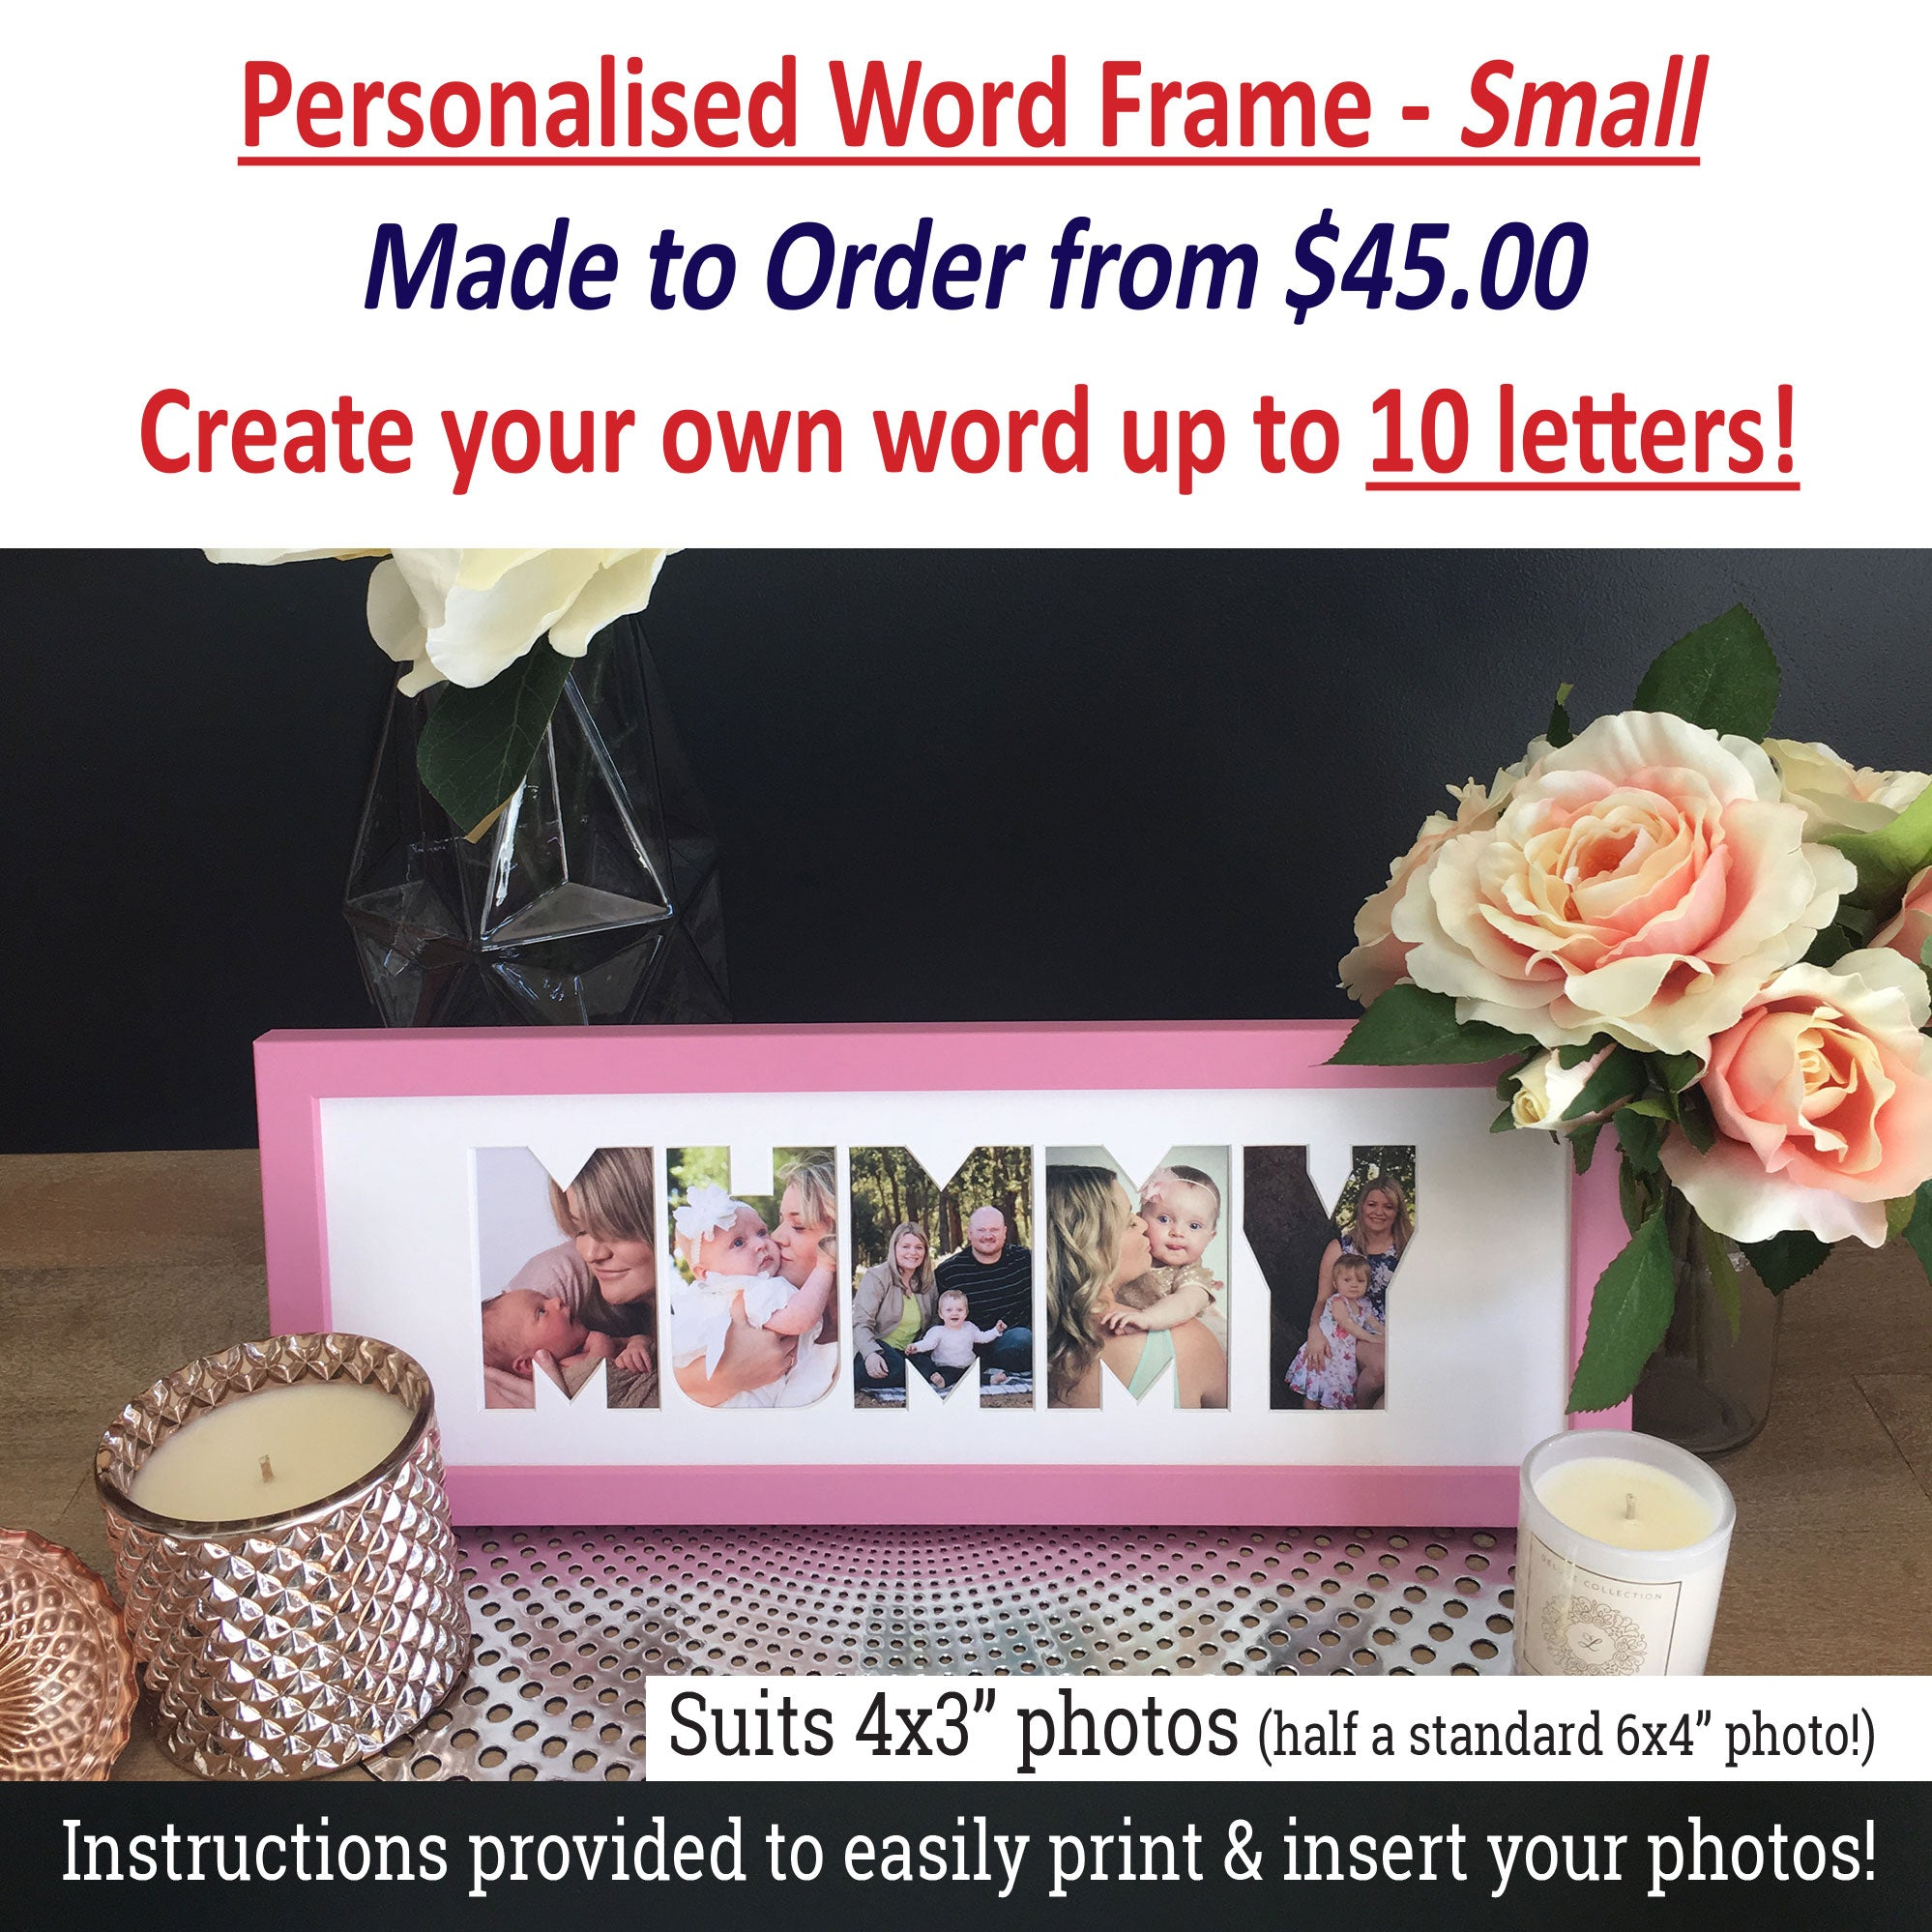 Personalised Word Frames Create Your Own 3 Letter Word Large